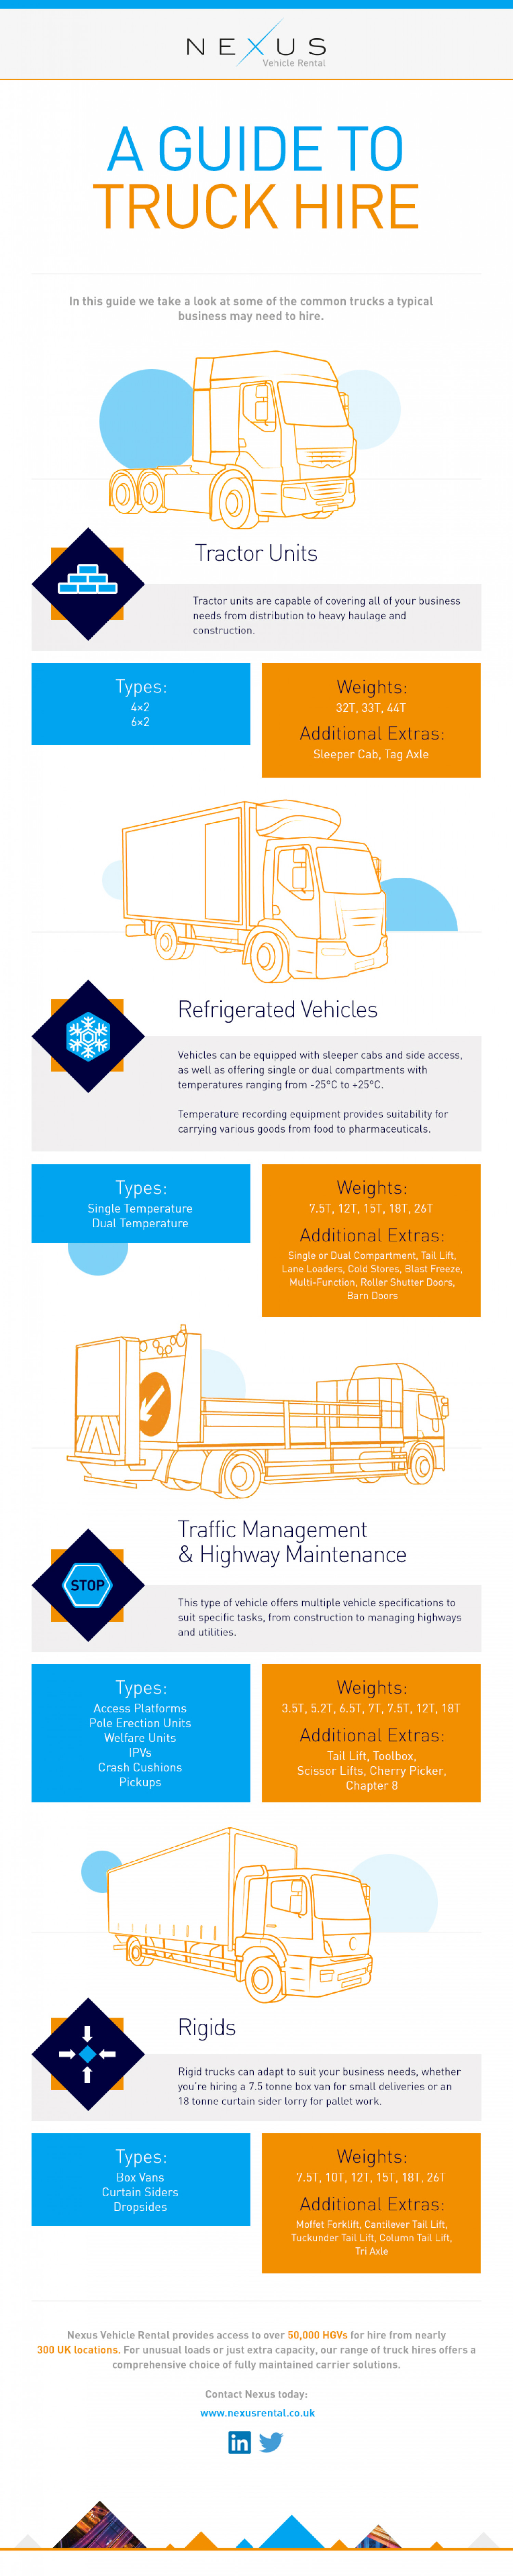 A Guide to Truck Hire Infographic